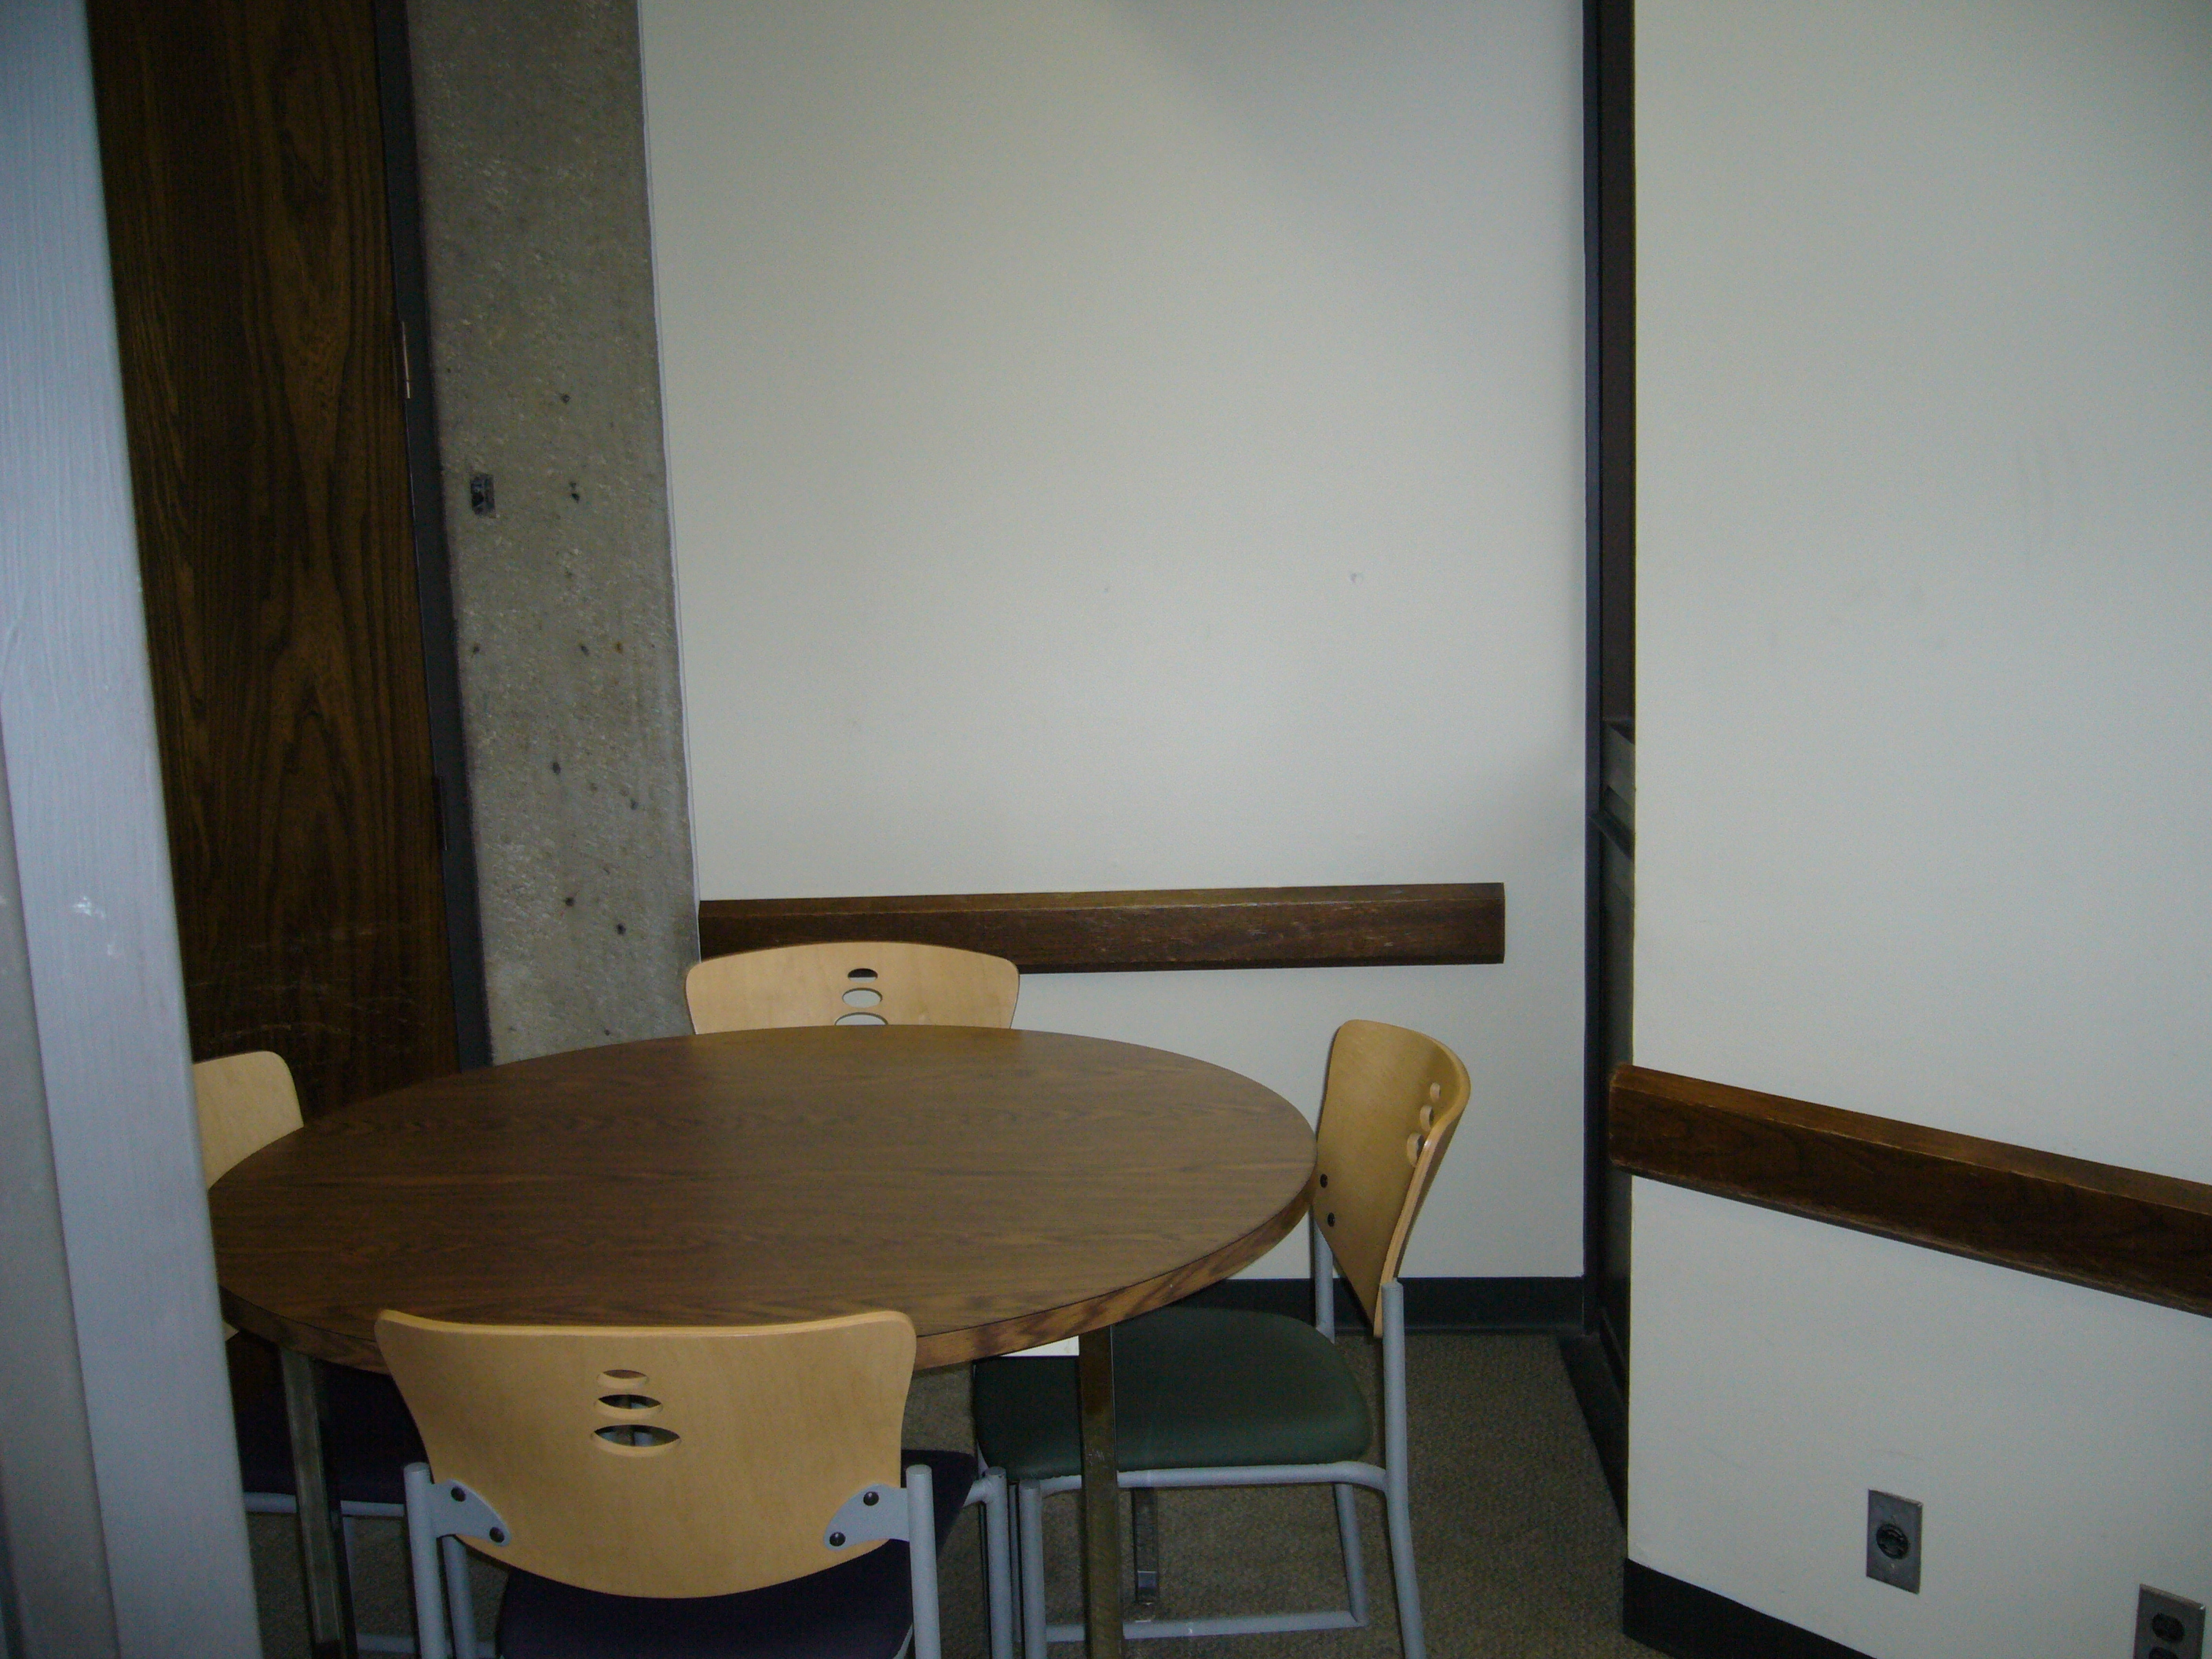 Bierce Library Room 252A